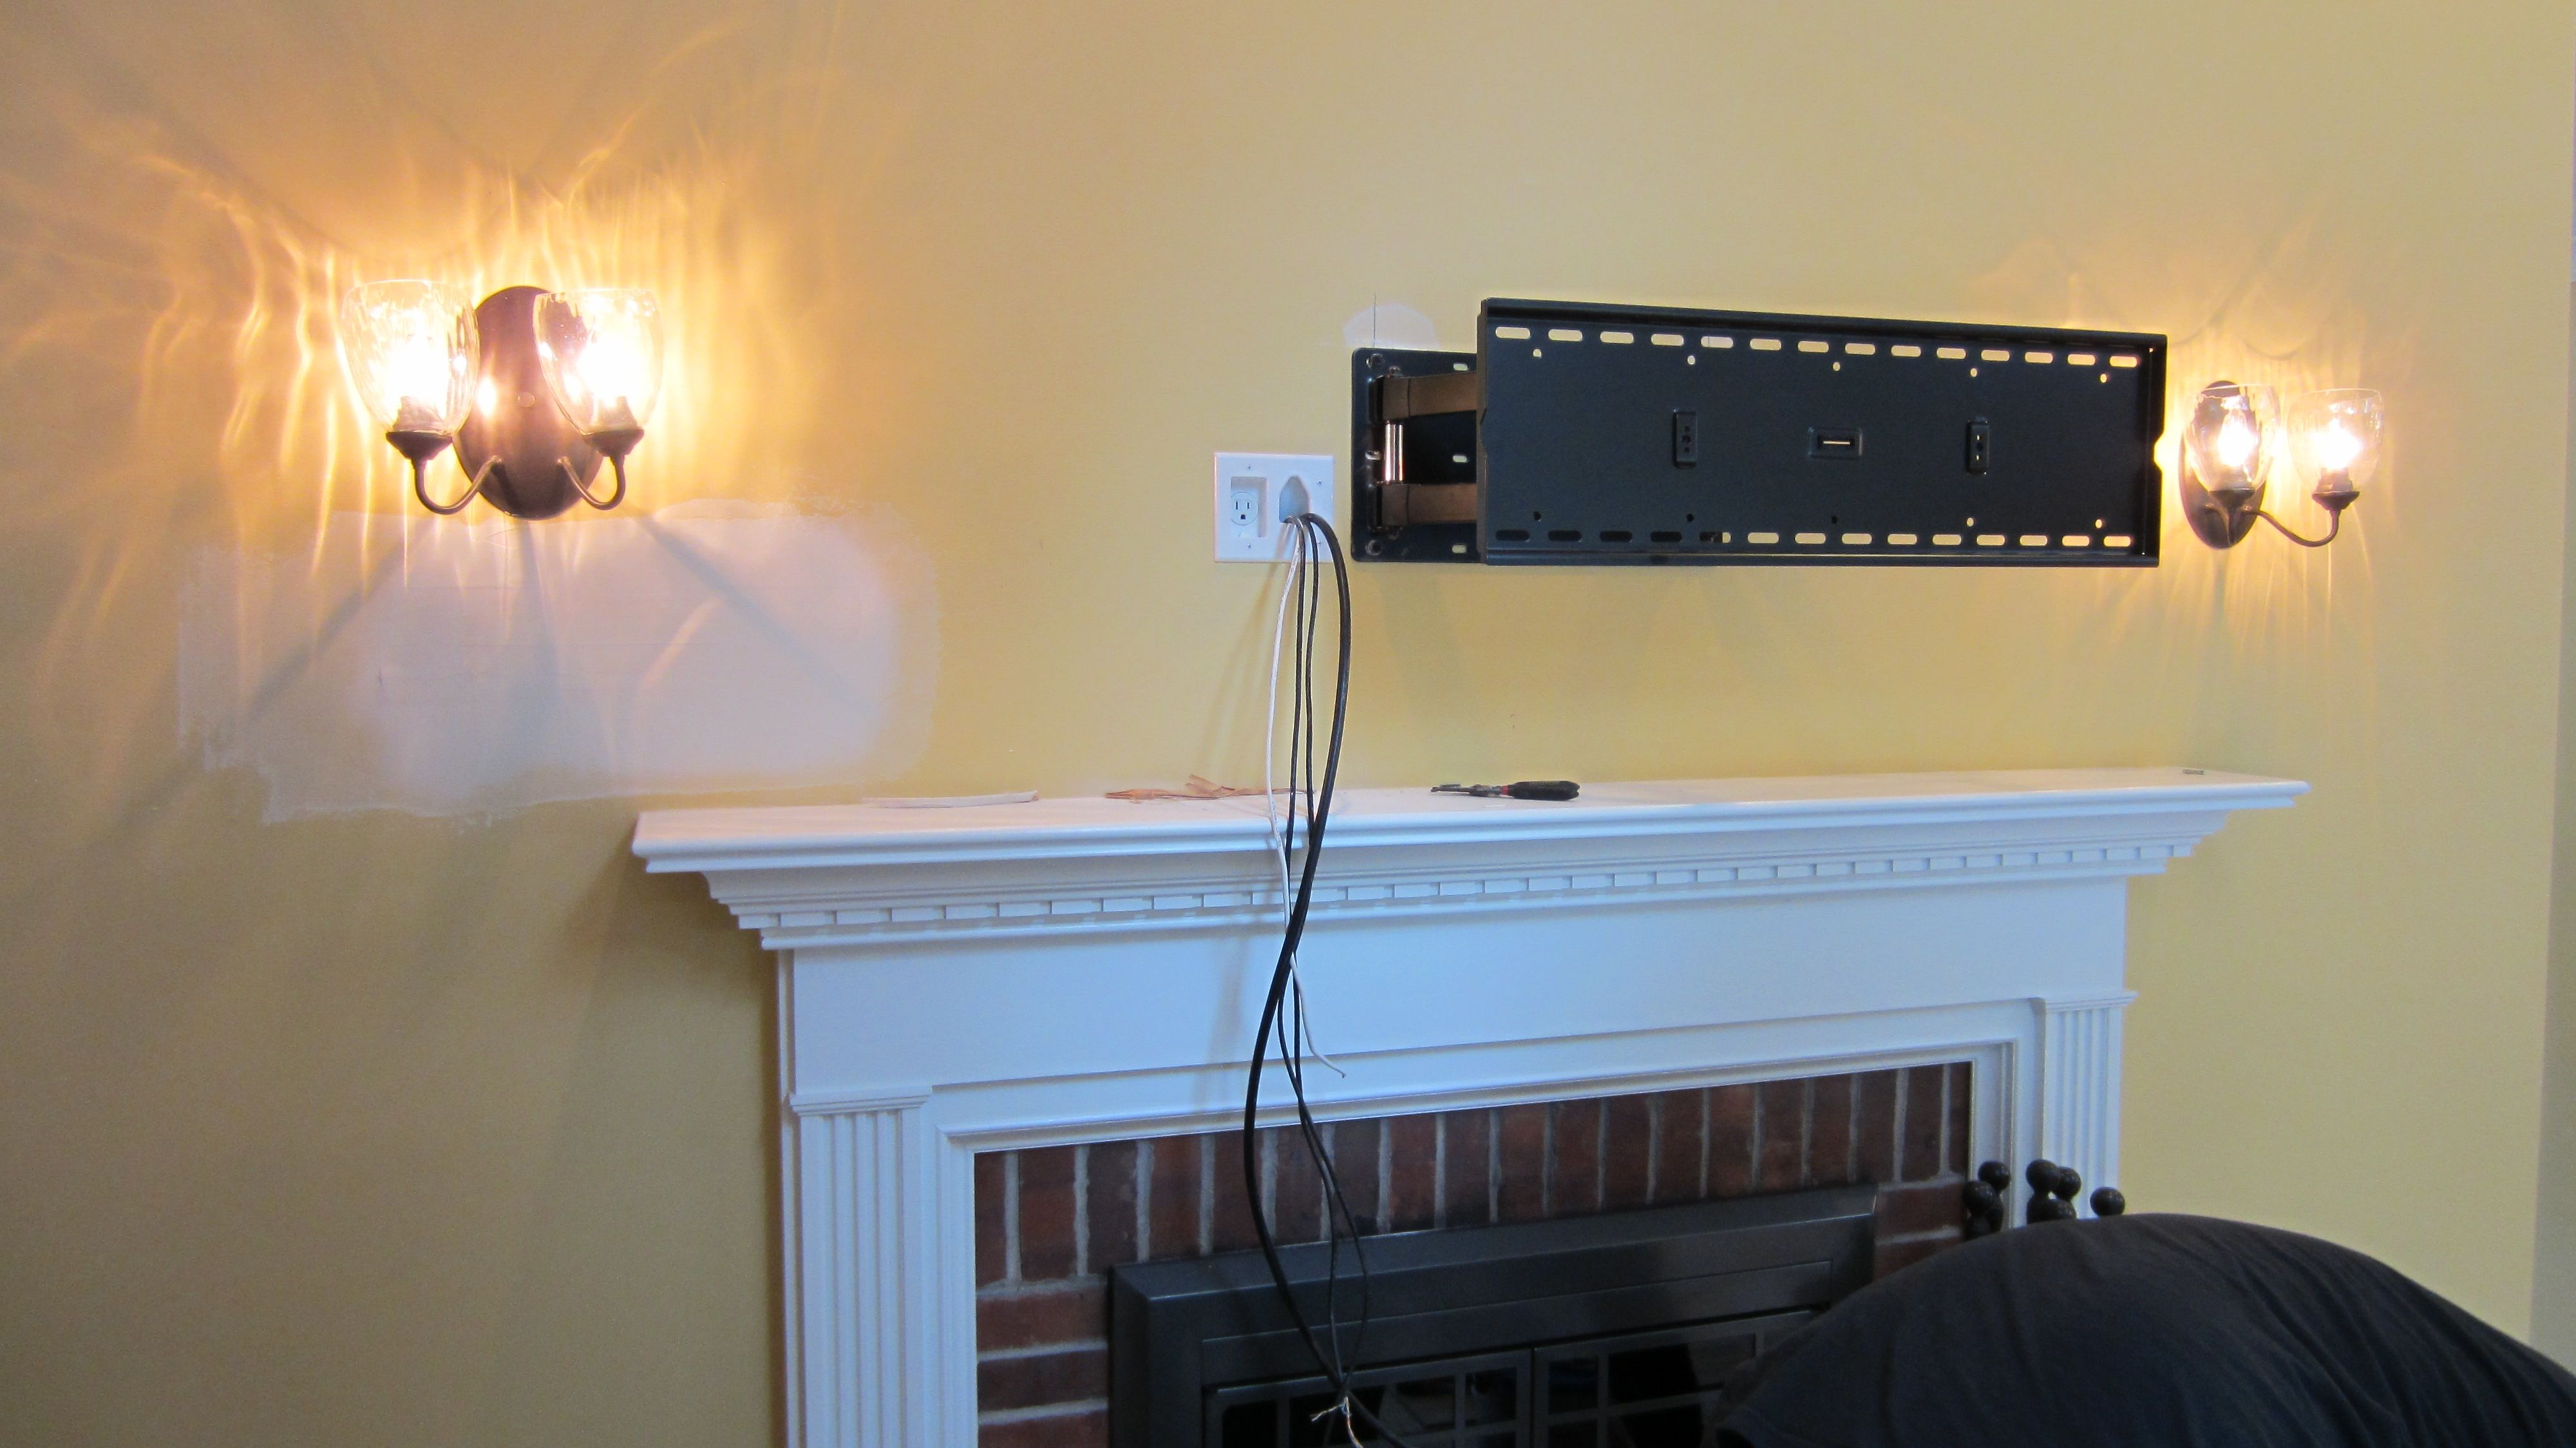 Wall Mount Kit To Hide Wires